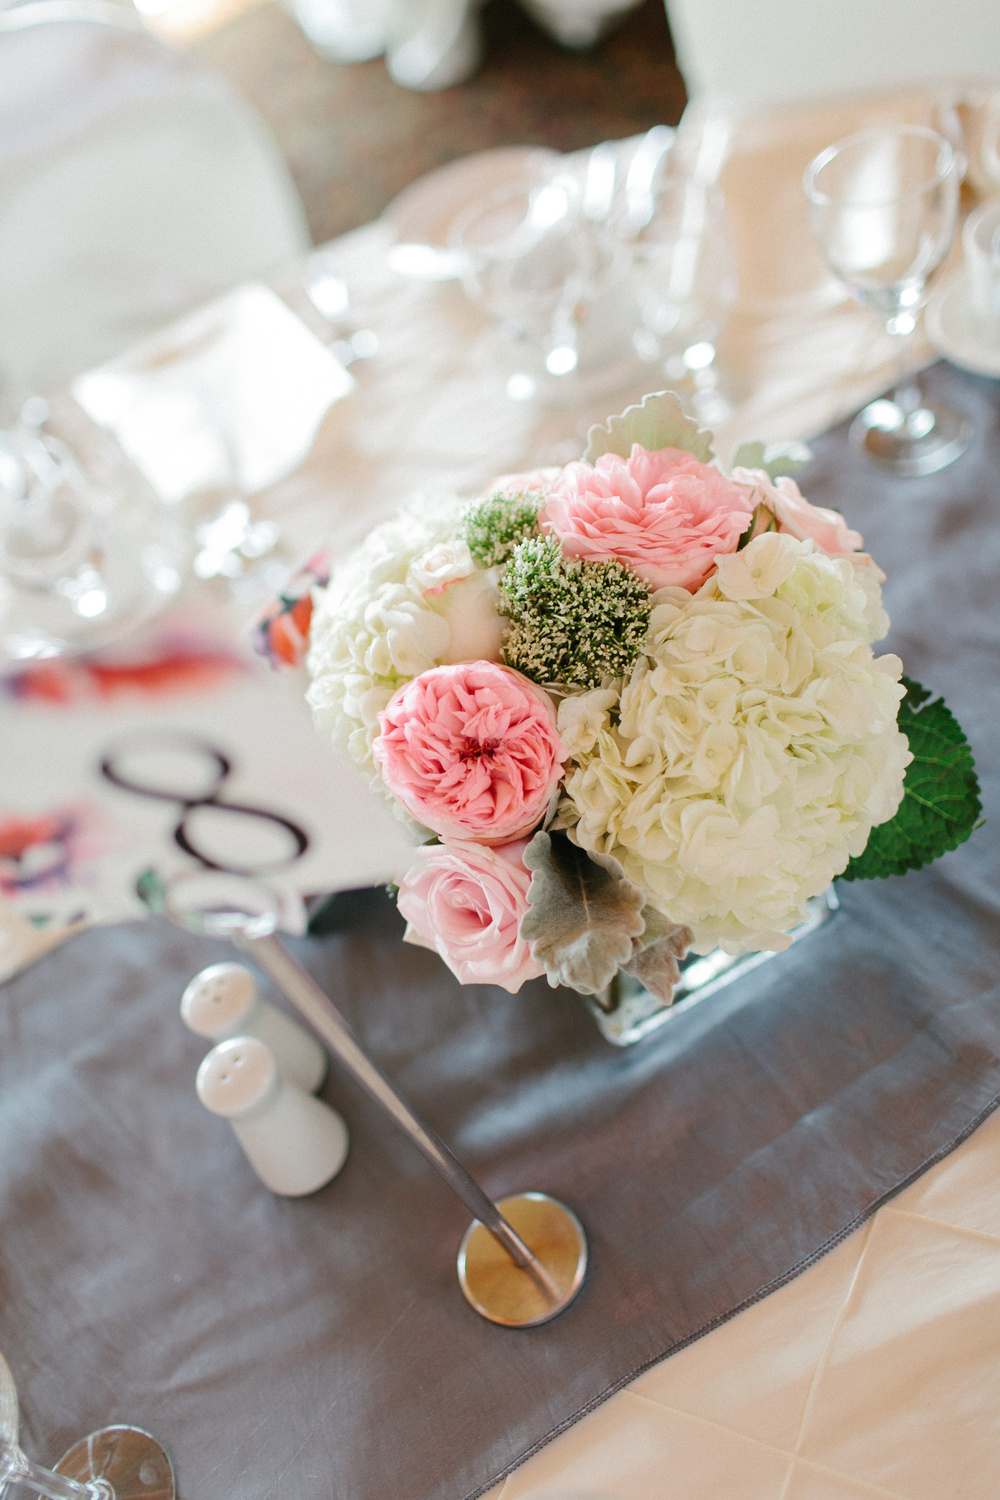 Pretty Pink and White Hydrangea Centerpiece | photo by blf Studios | flowers by Norwood Florist | wedding by Madeline's Weddings